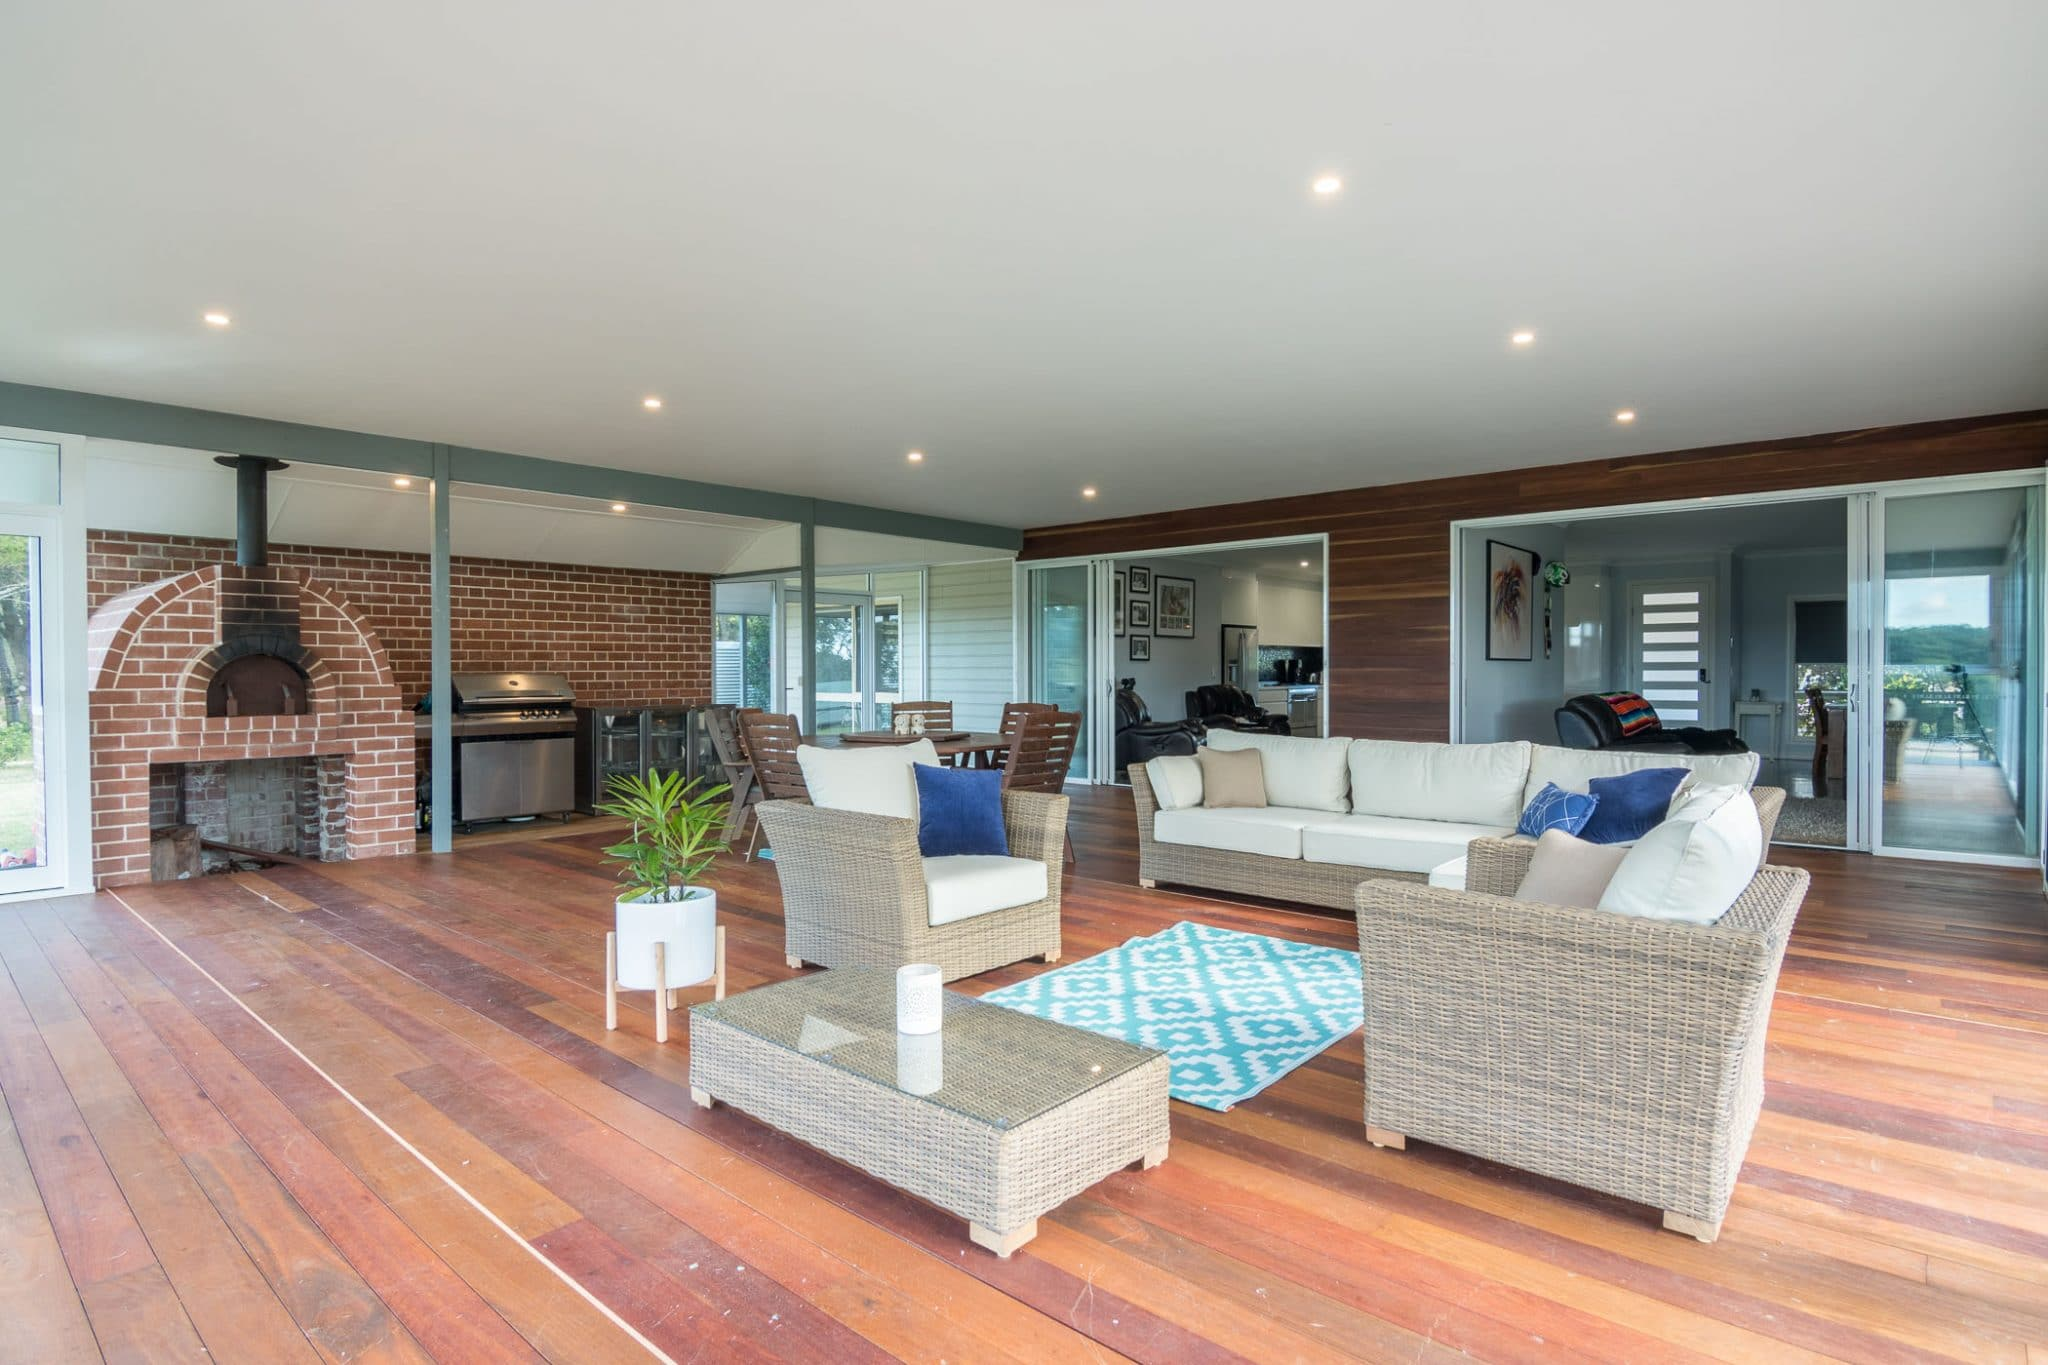 Architectural interiors and exteriors (40 of 140)